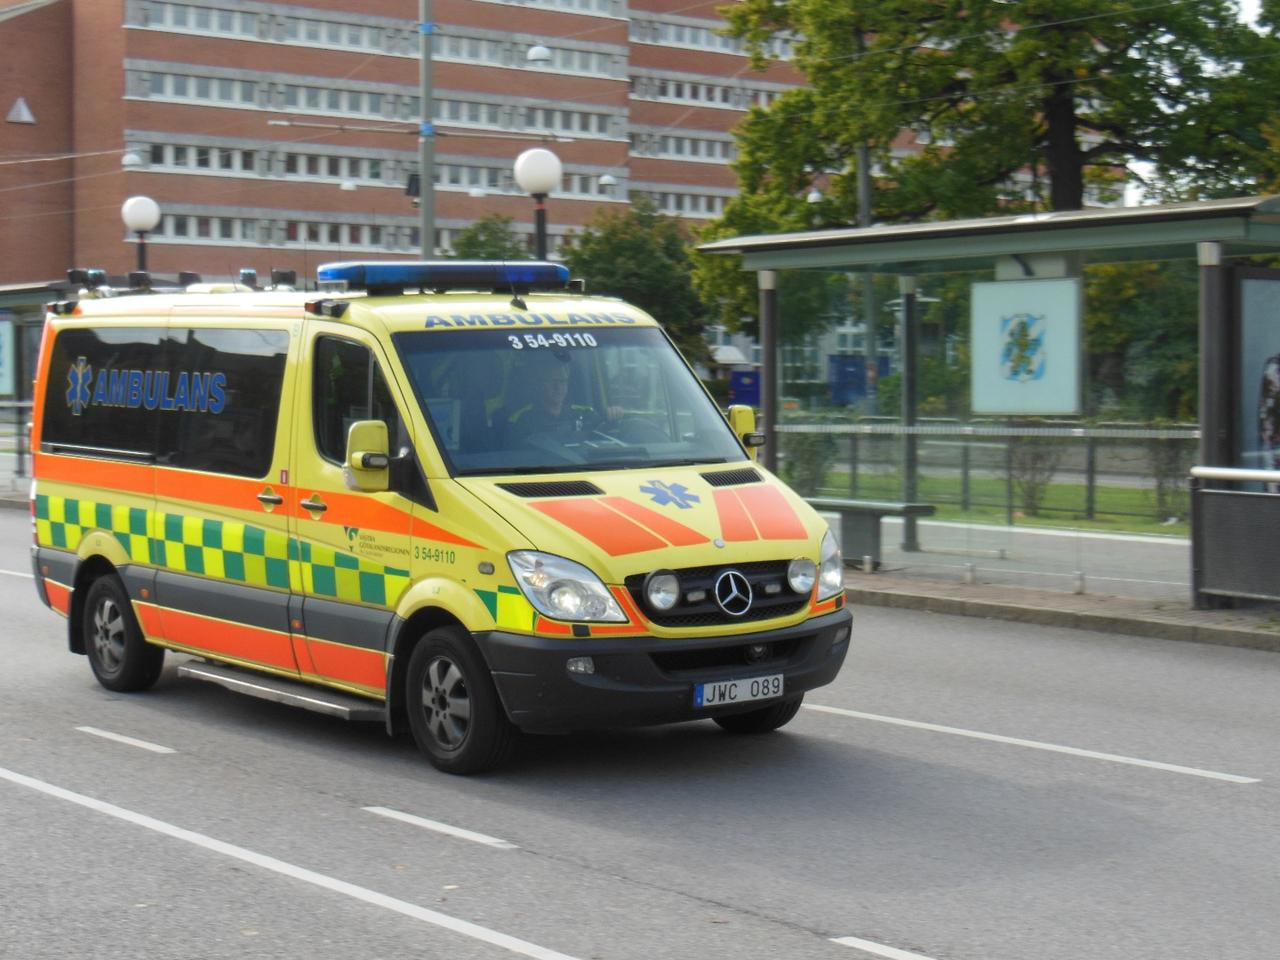 The EVAM System transmits audio and text warnings from ambulances to other vehicles